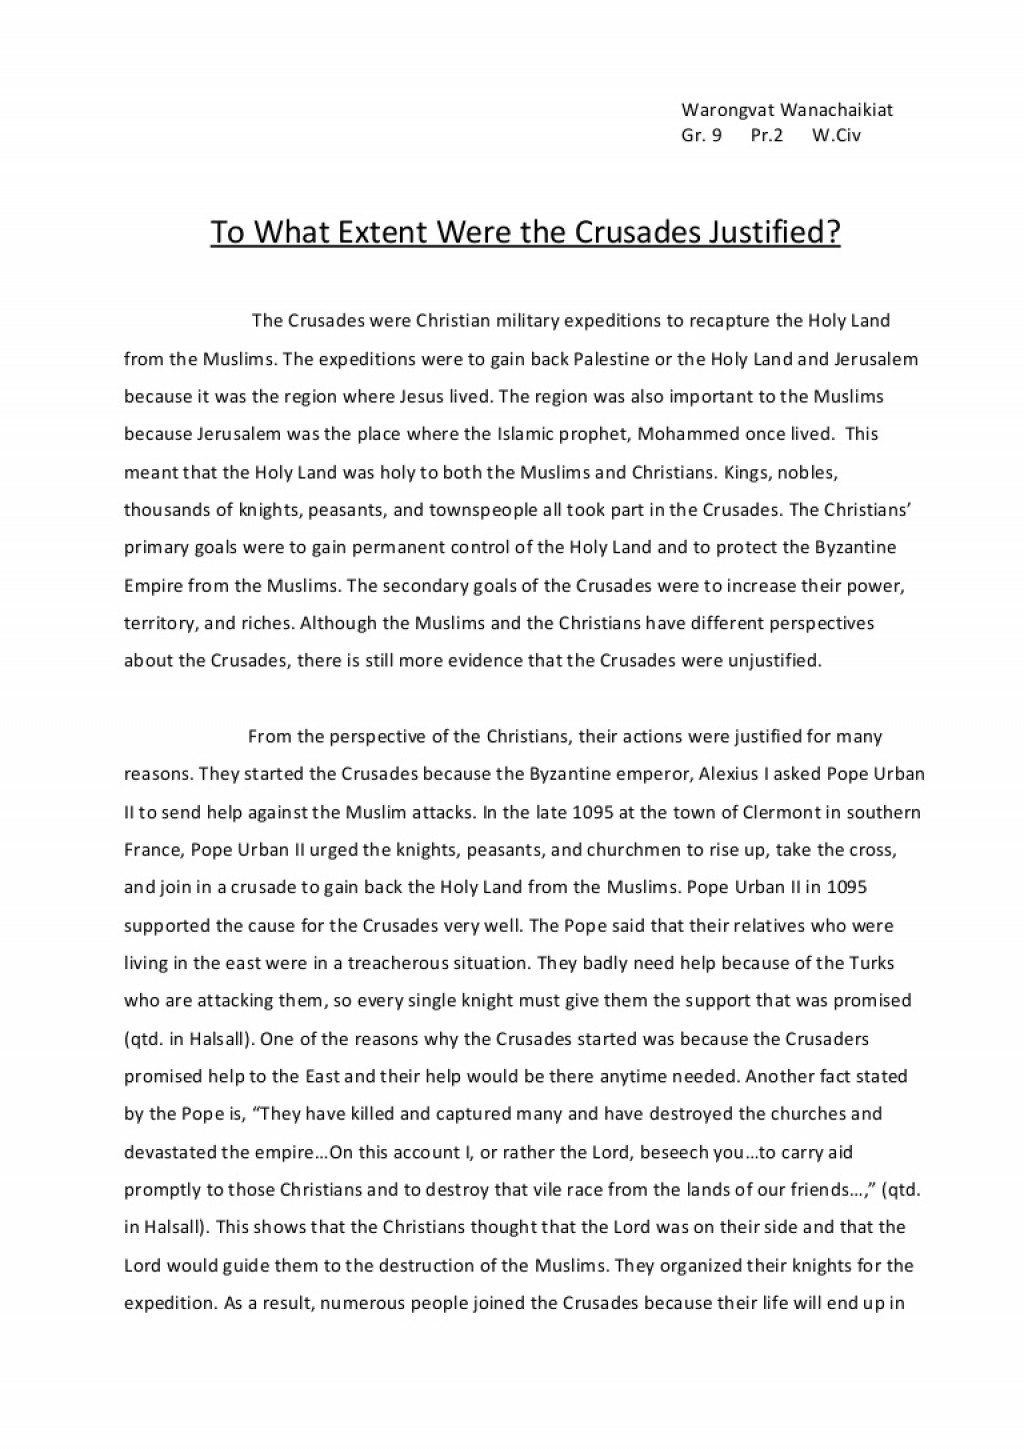 001 Crusades Essay Towhatextentwerethecrusadesjustified Phpapp01 Thumbnail Awful Summary Impact Of The Dbq Hook Large